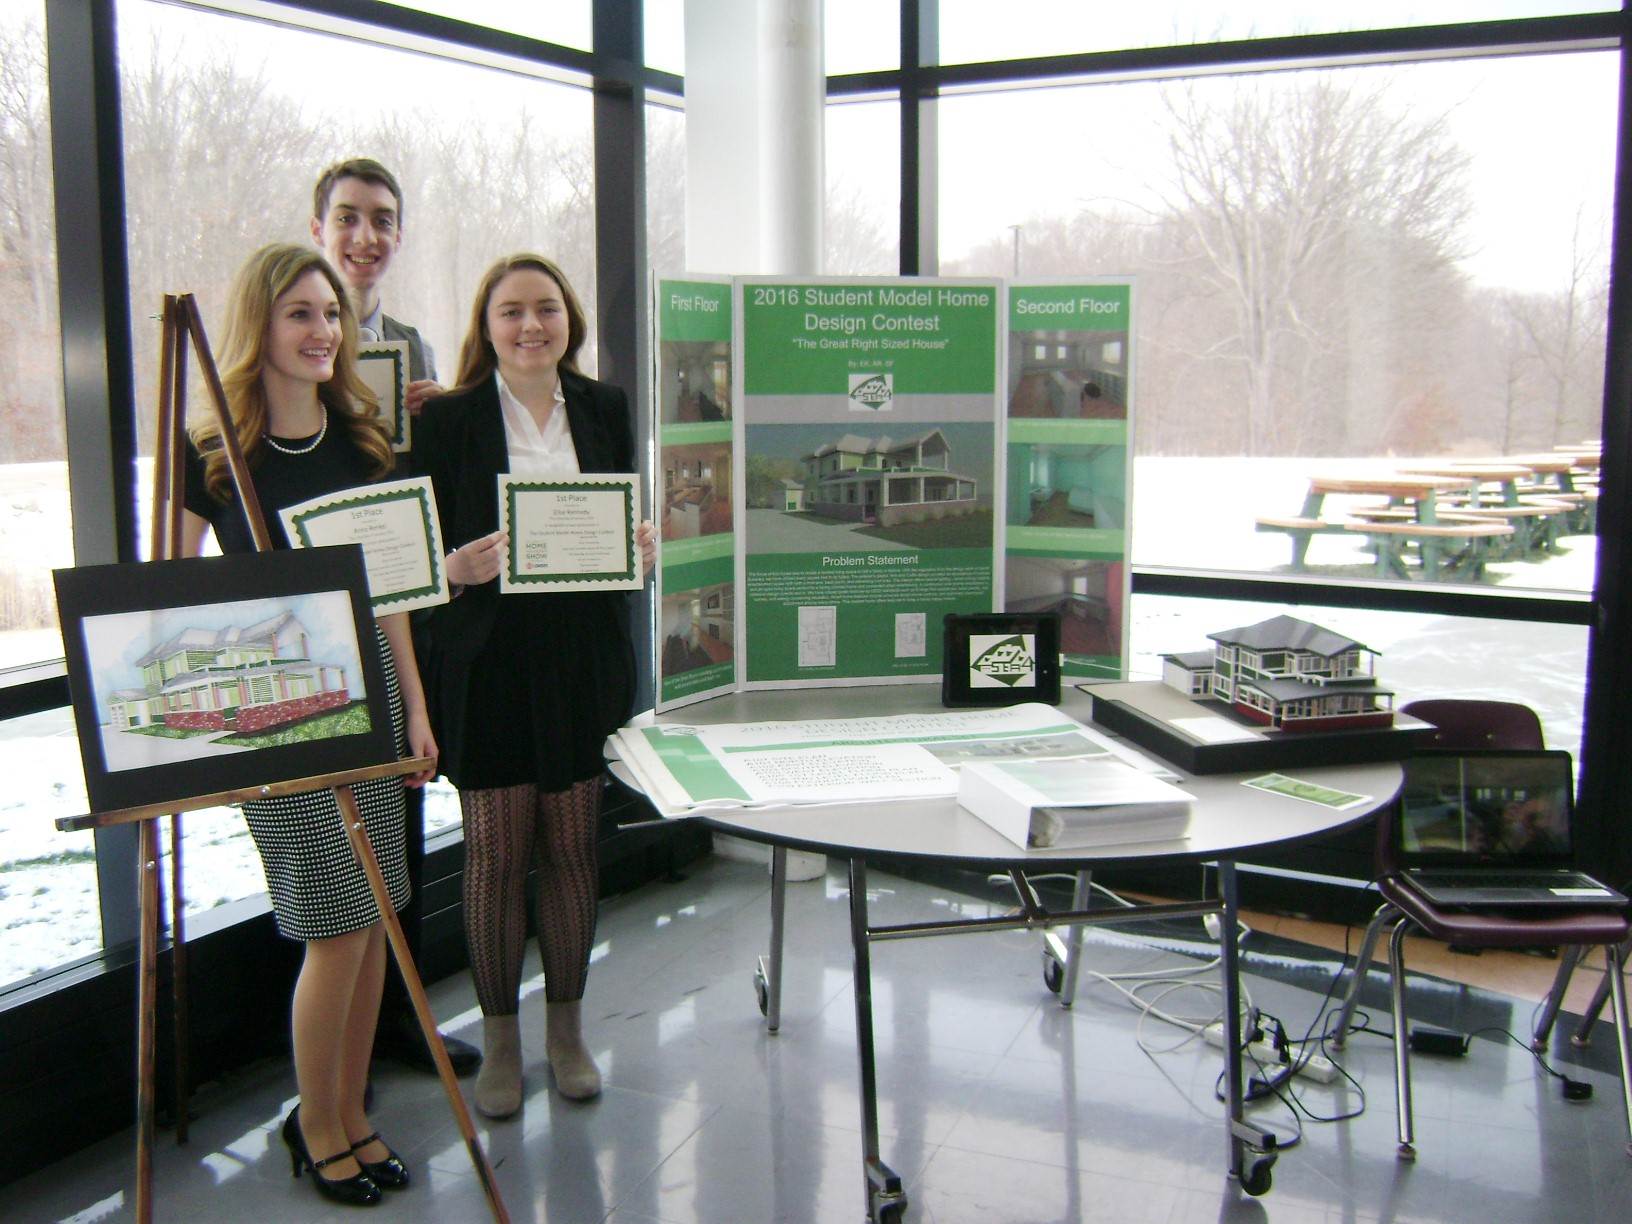 Anna Renkel, Sean Freeman, and Elise Kennedy - grand prize winners - 2016 Student Model Home Design Contest